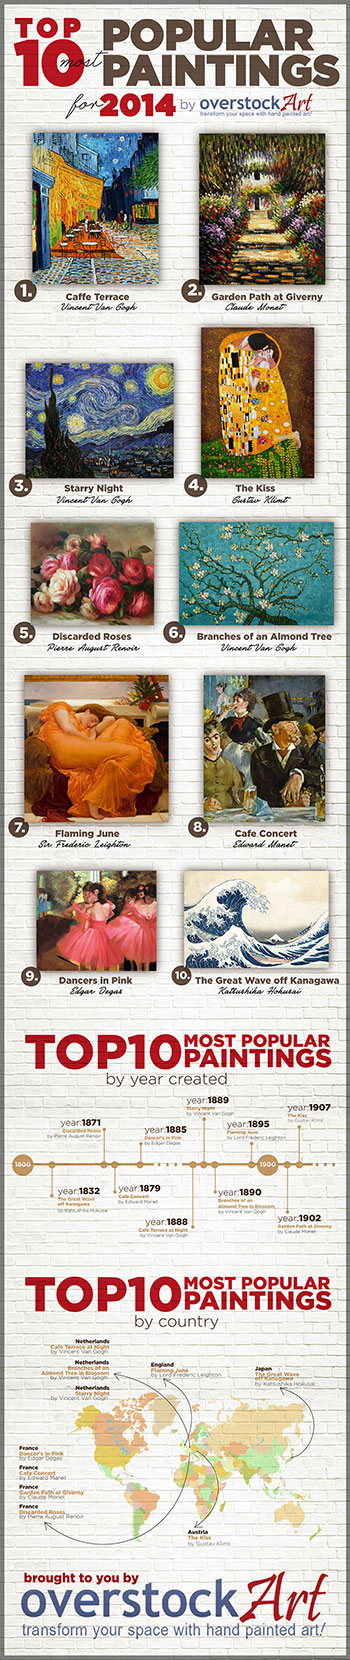 Top 10 most popular art for 2014